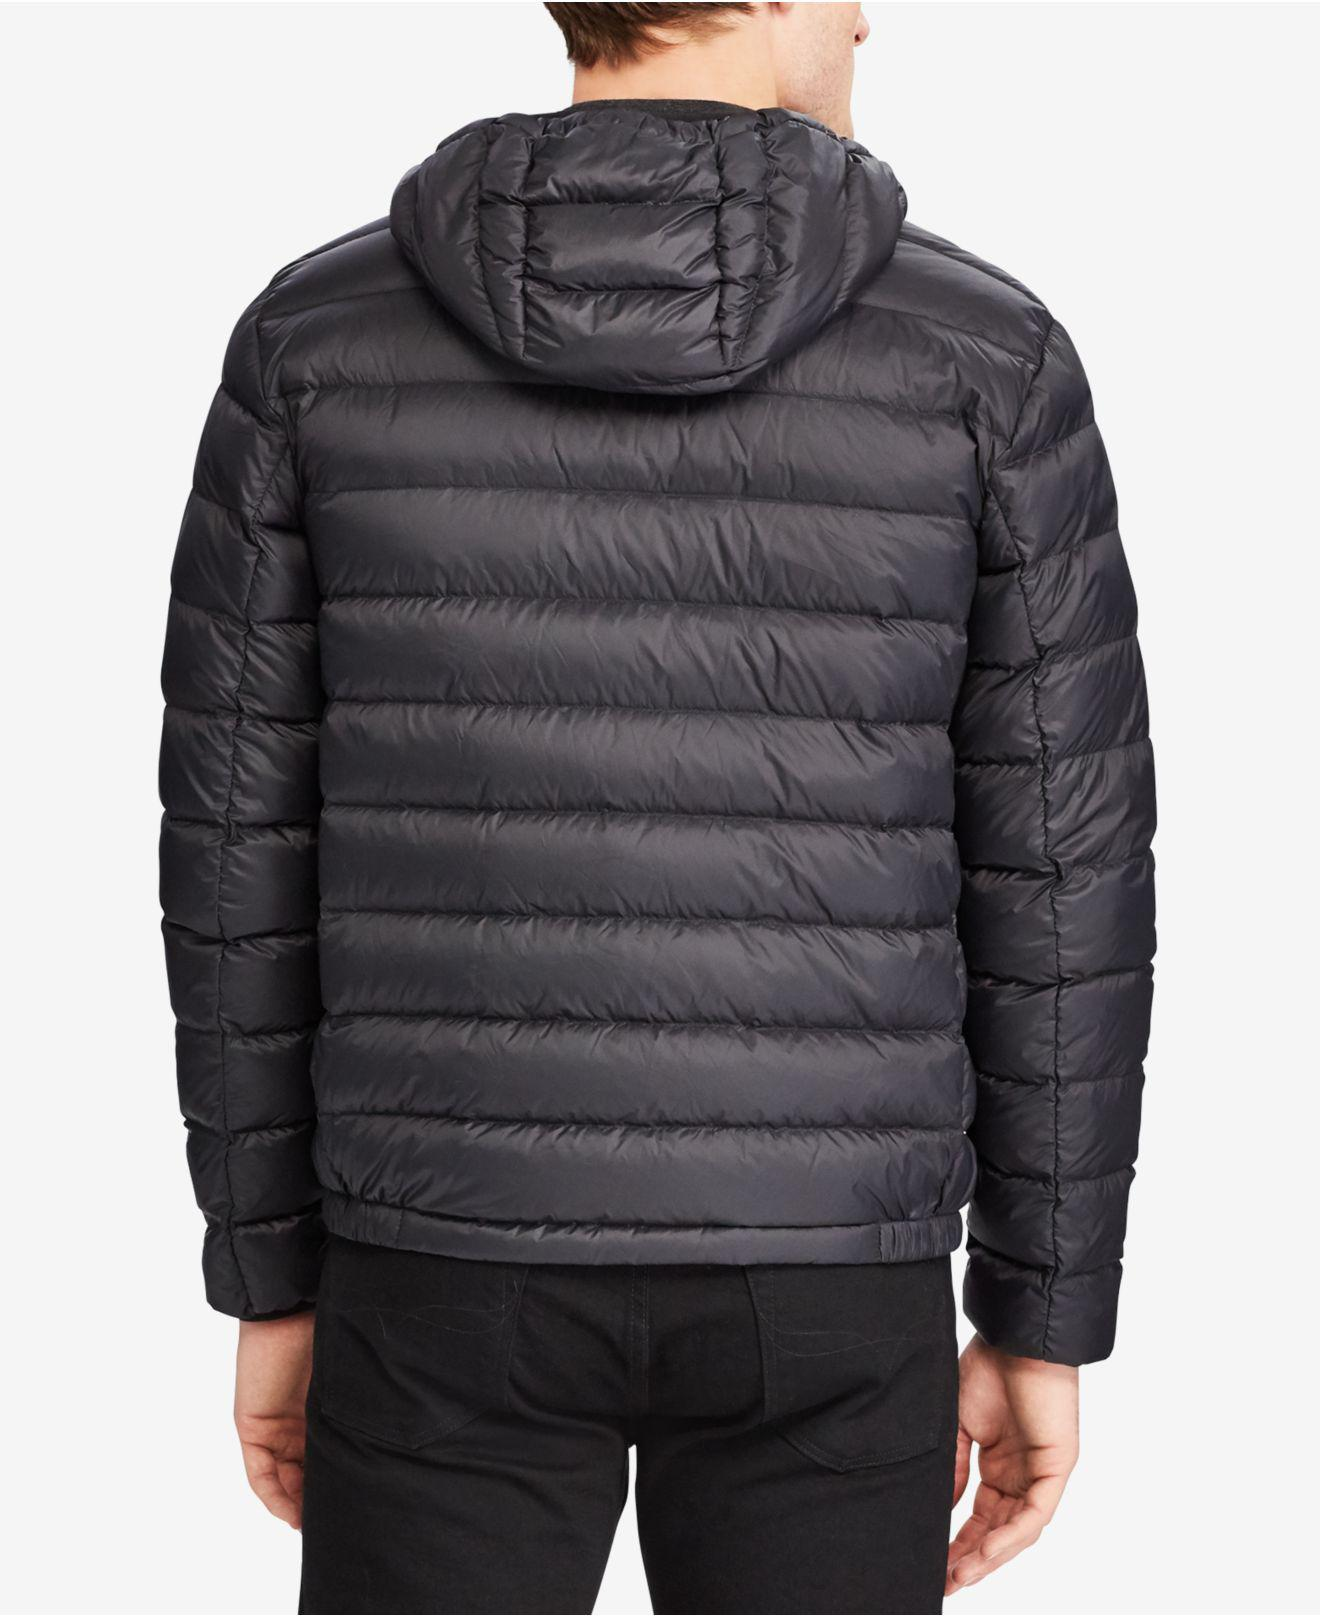 Polo Ralph Lauren Leather Men's Big & Tall Packable Hooded ...